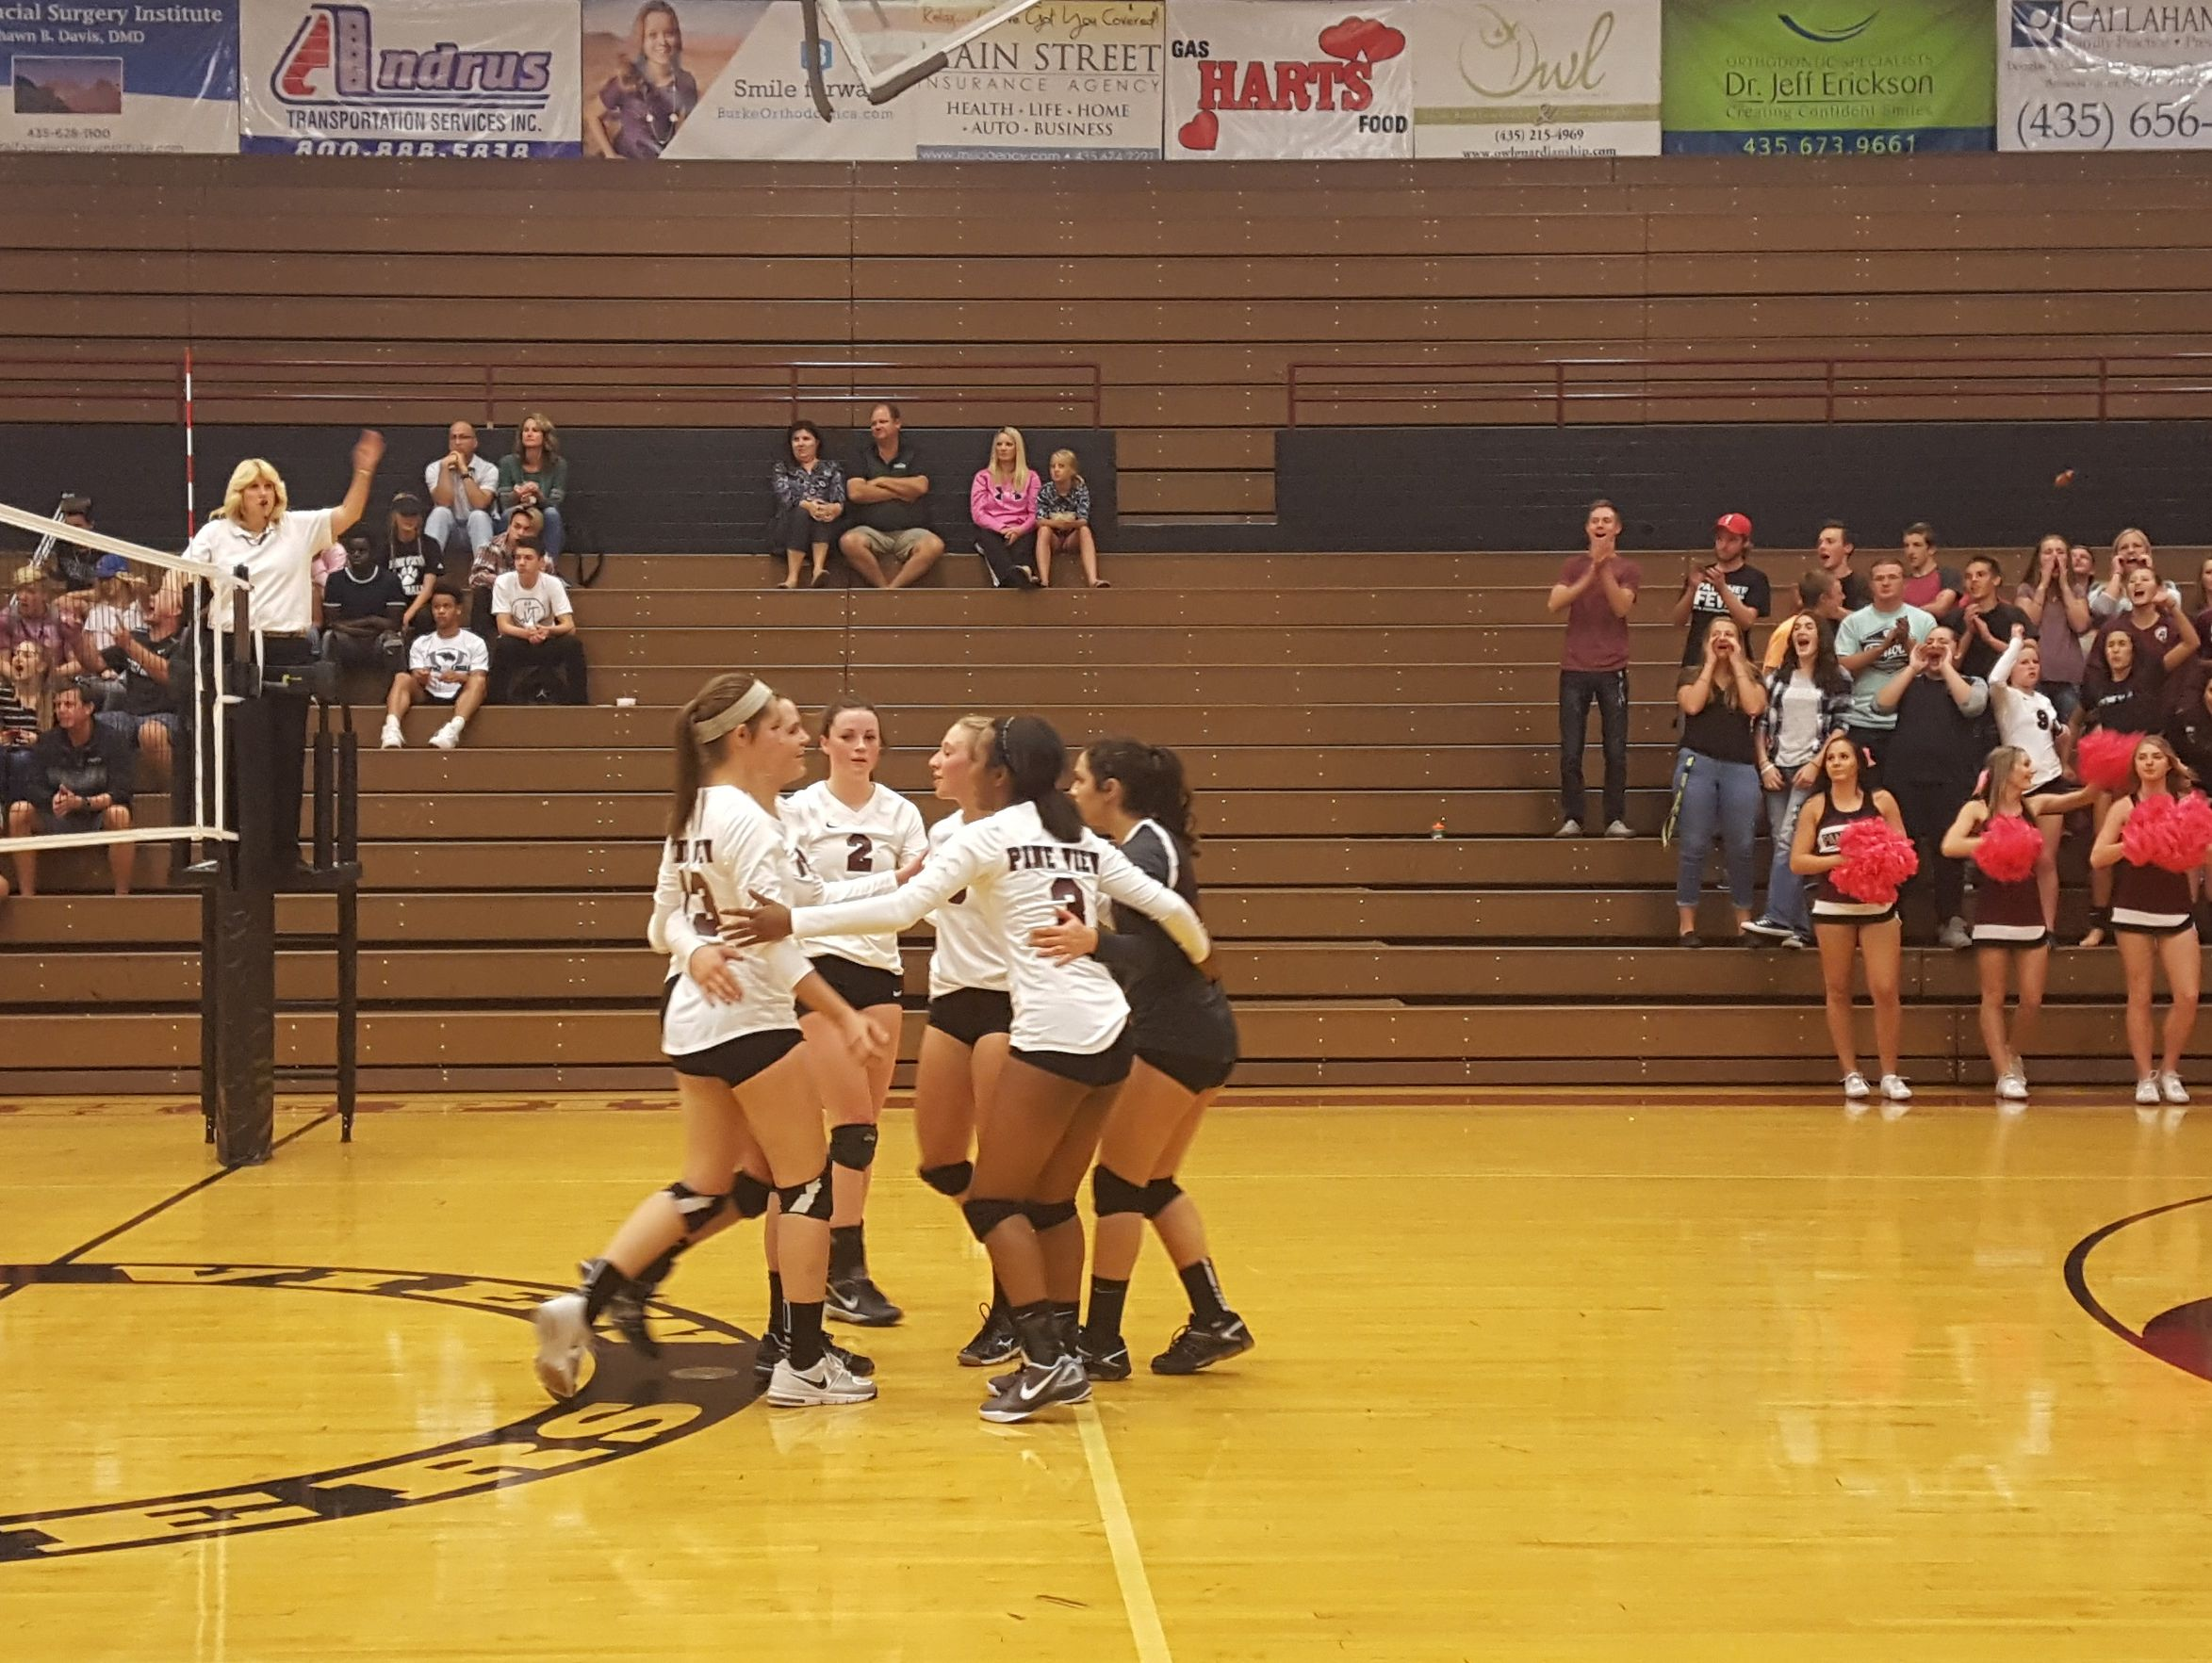 Pine View volleyball players celebrate during their win over Snow Canyon, October 6, 2016.